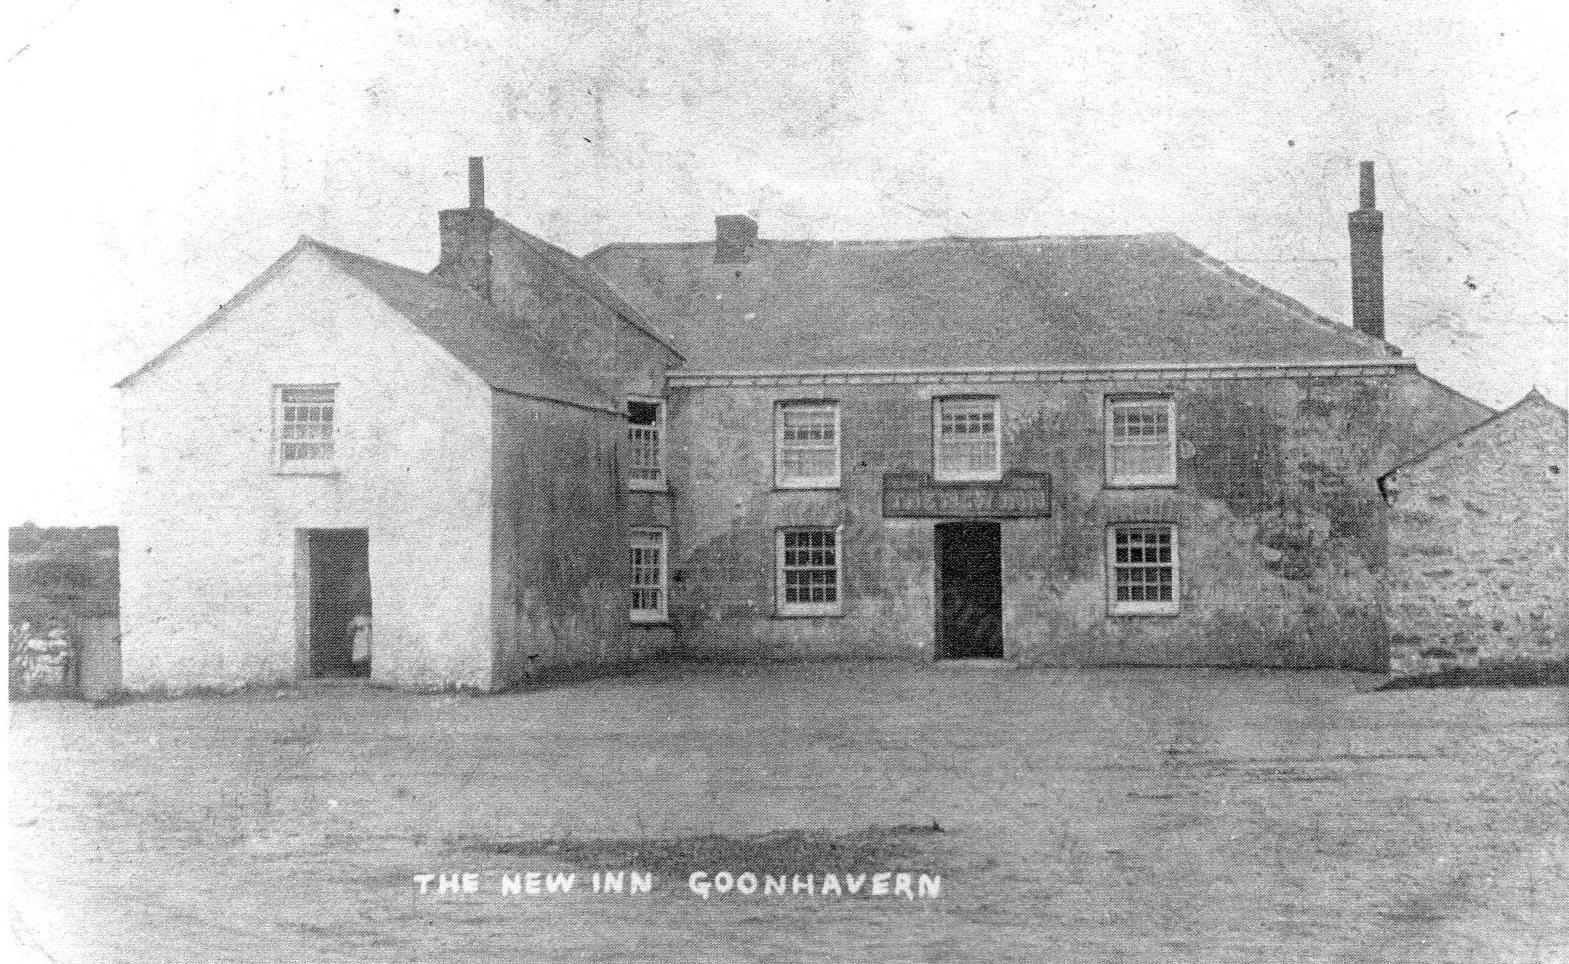 The New Inn Before 1900